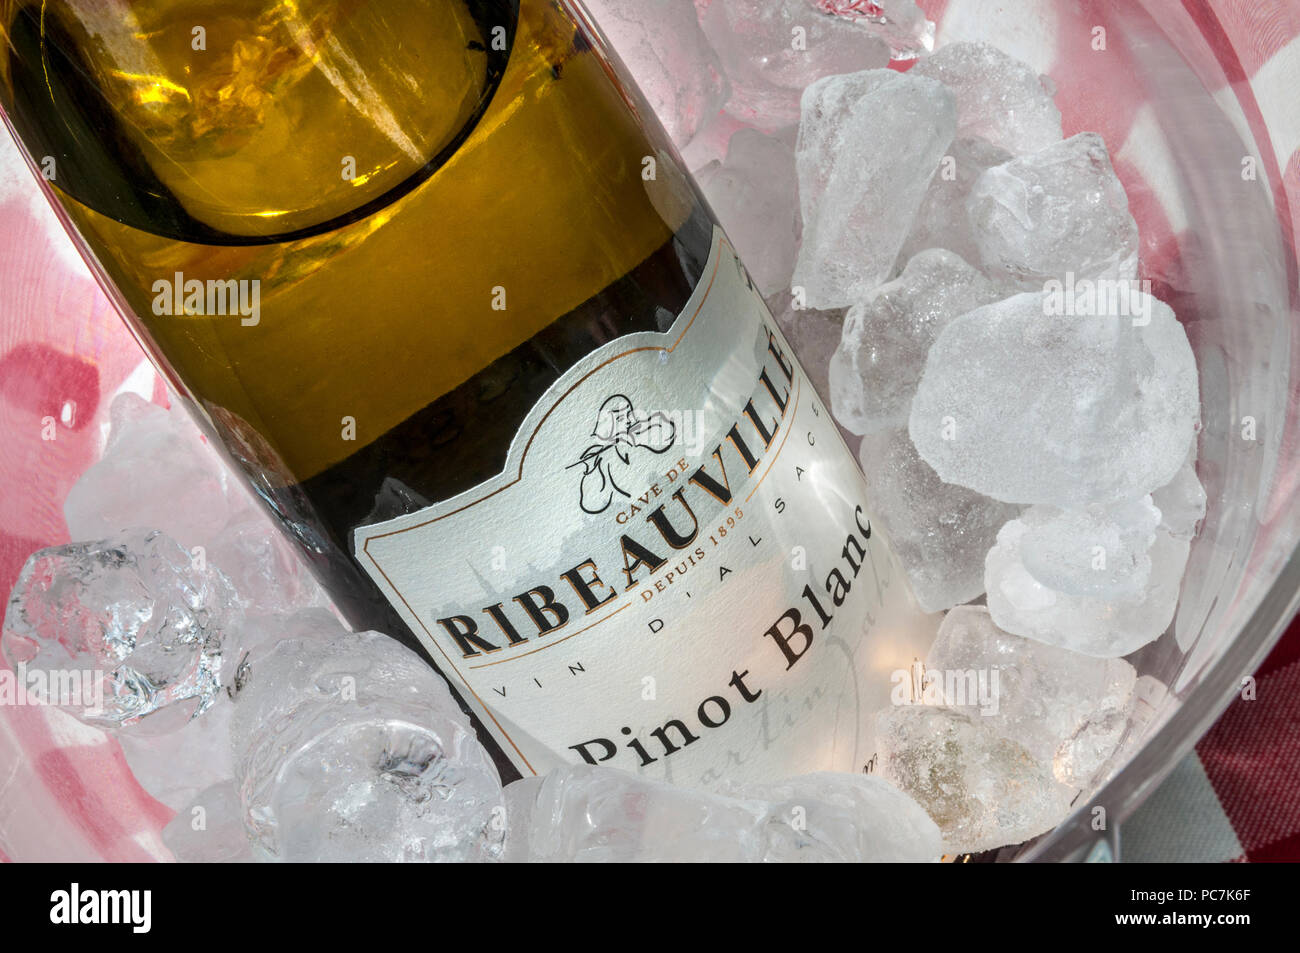 Pinot Blanc white wine bottle chilling in wine cooler Cave de Ribeauville Alsace France - Stock Image